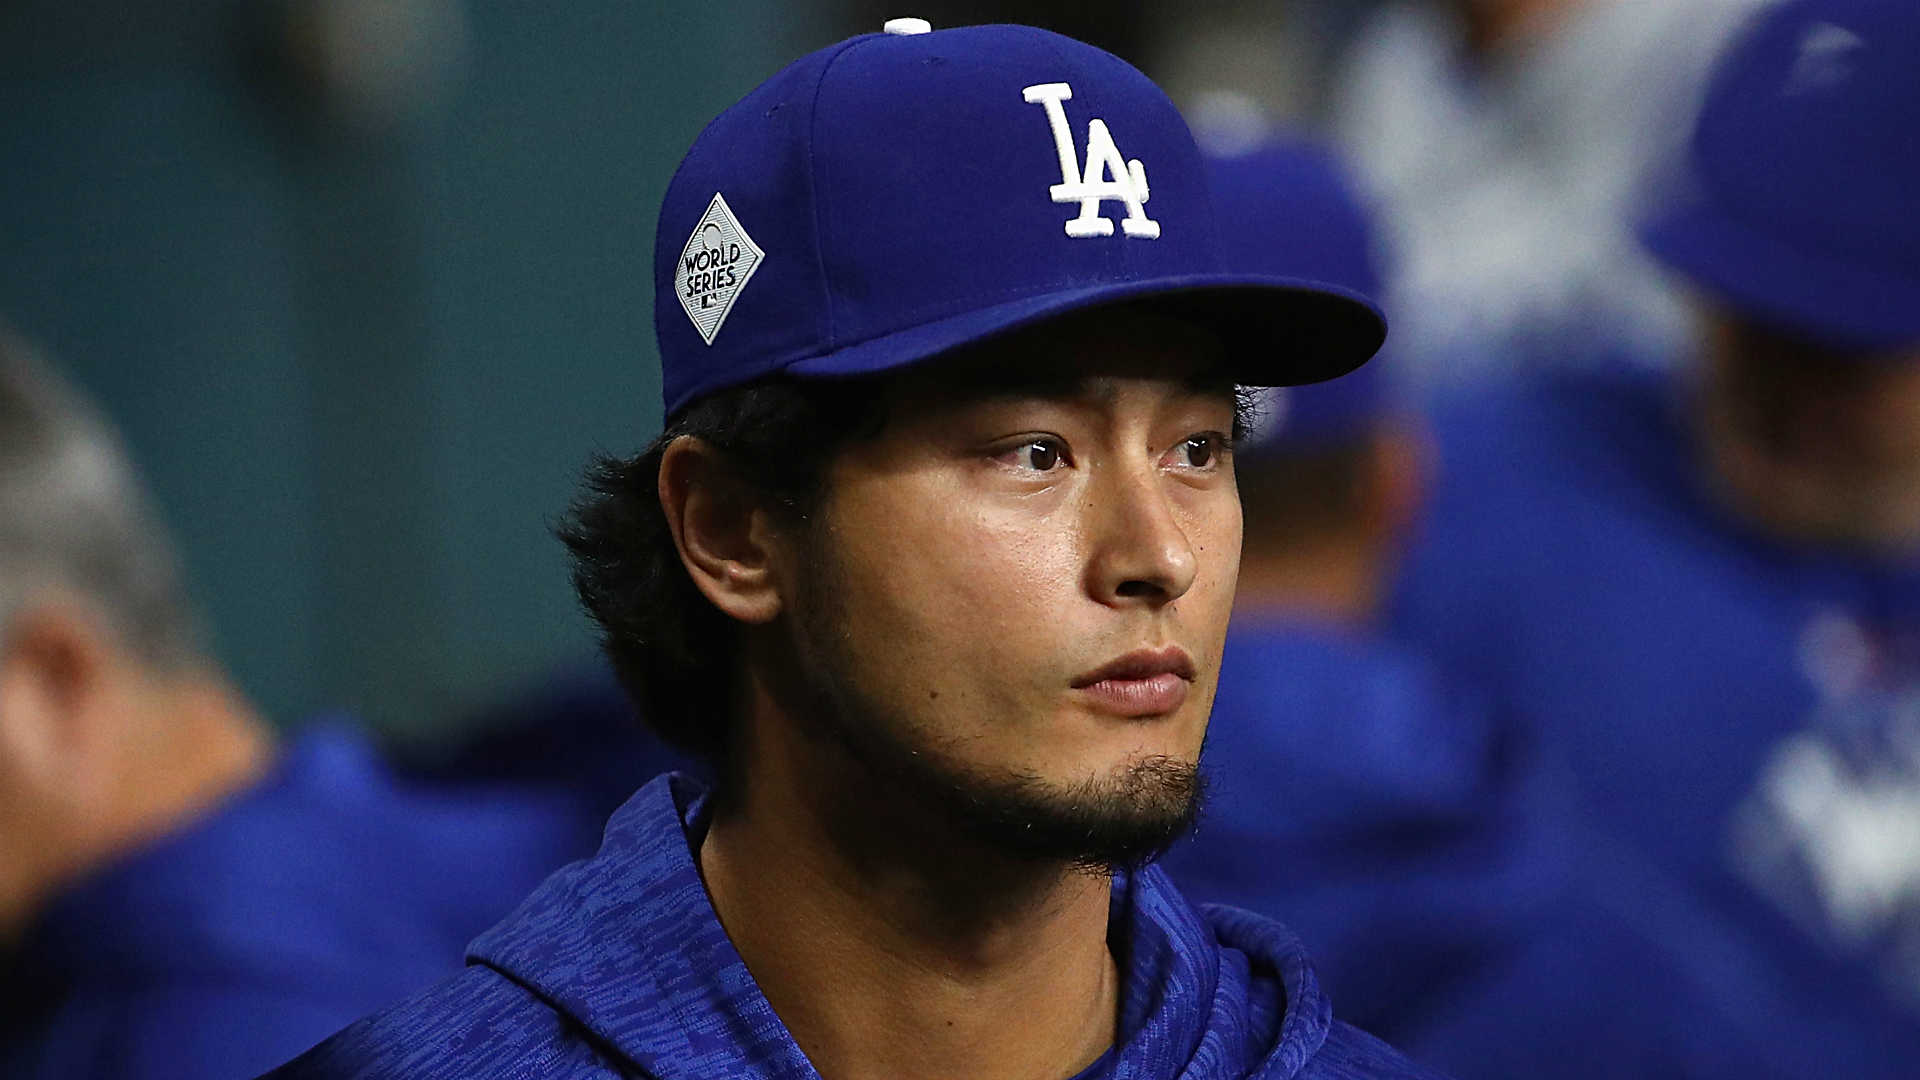 Cubs reportedly sign Darvish to a six-year deal